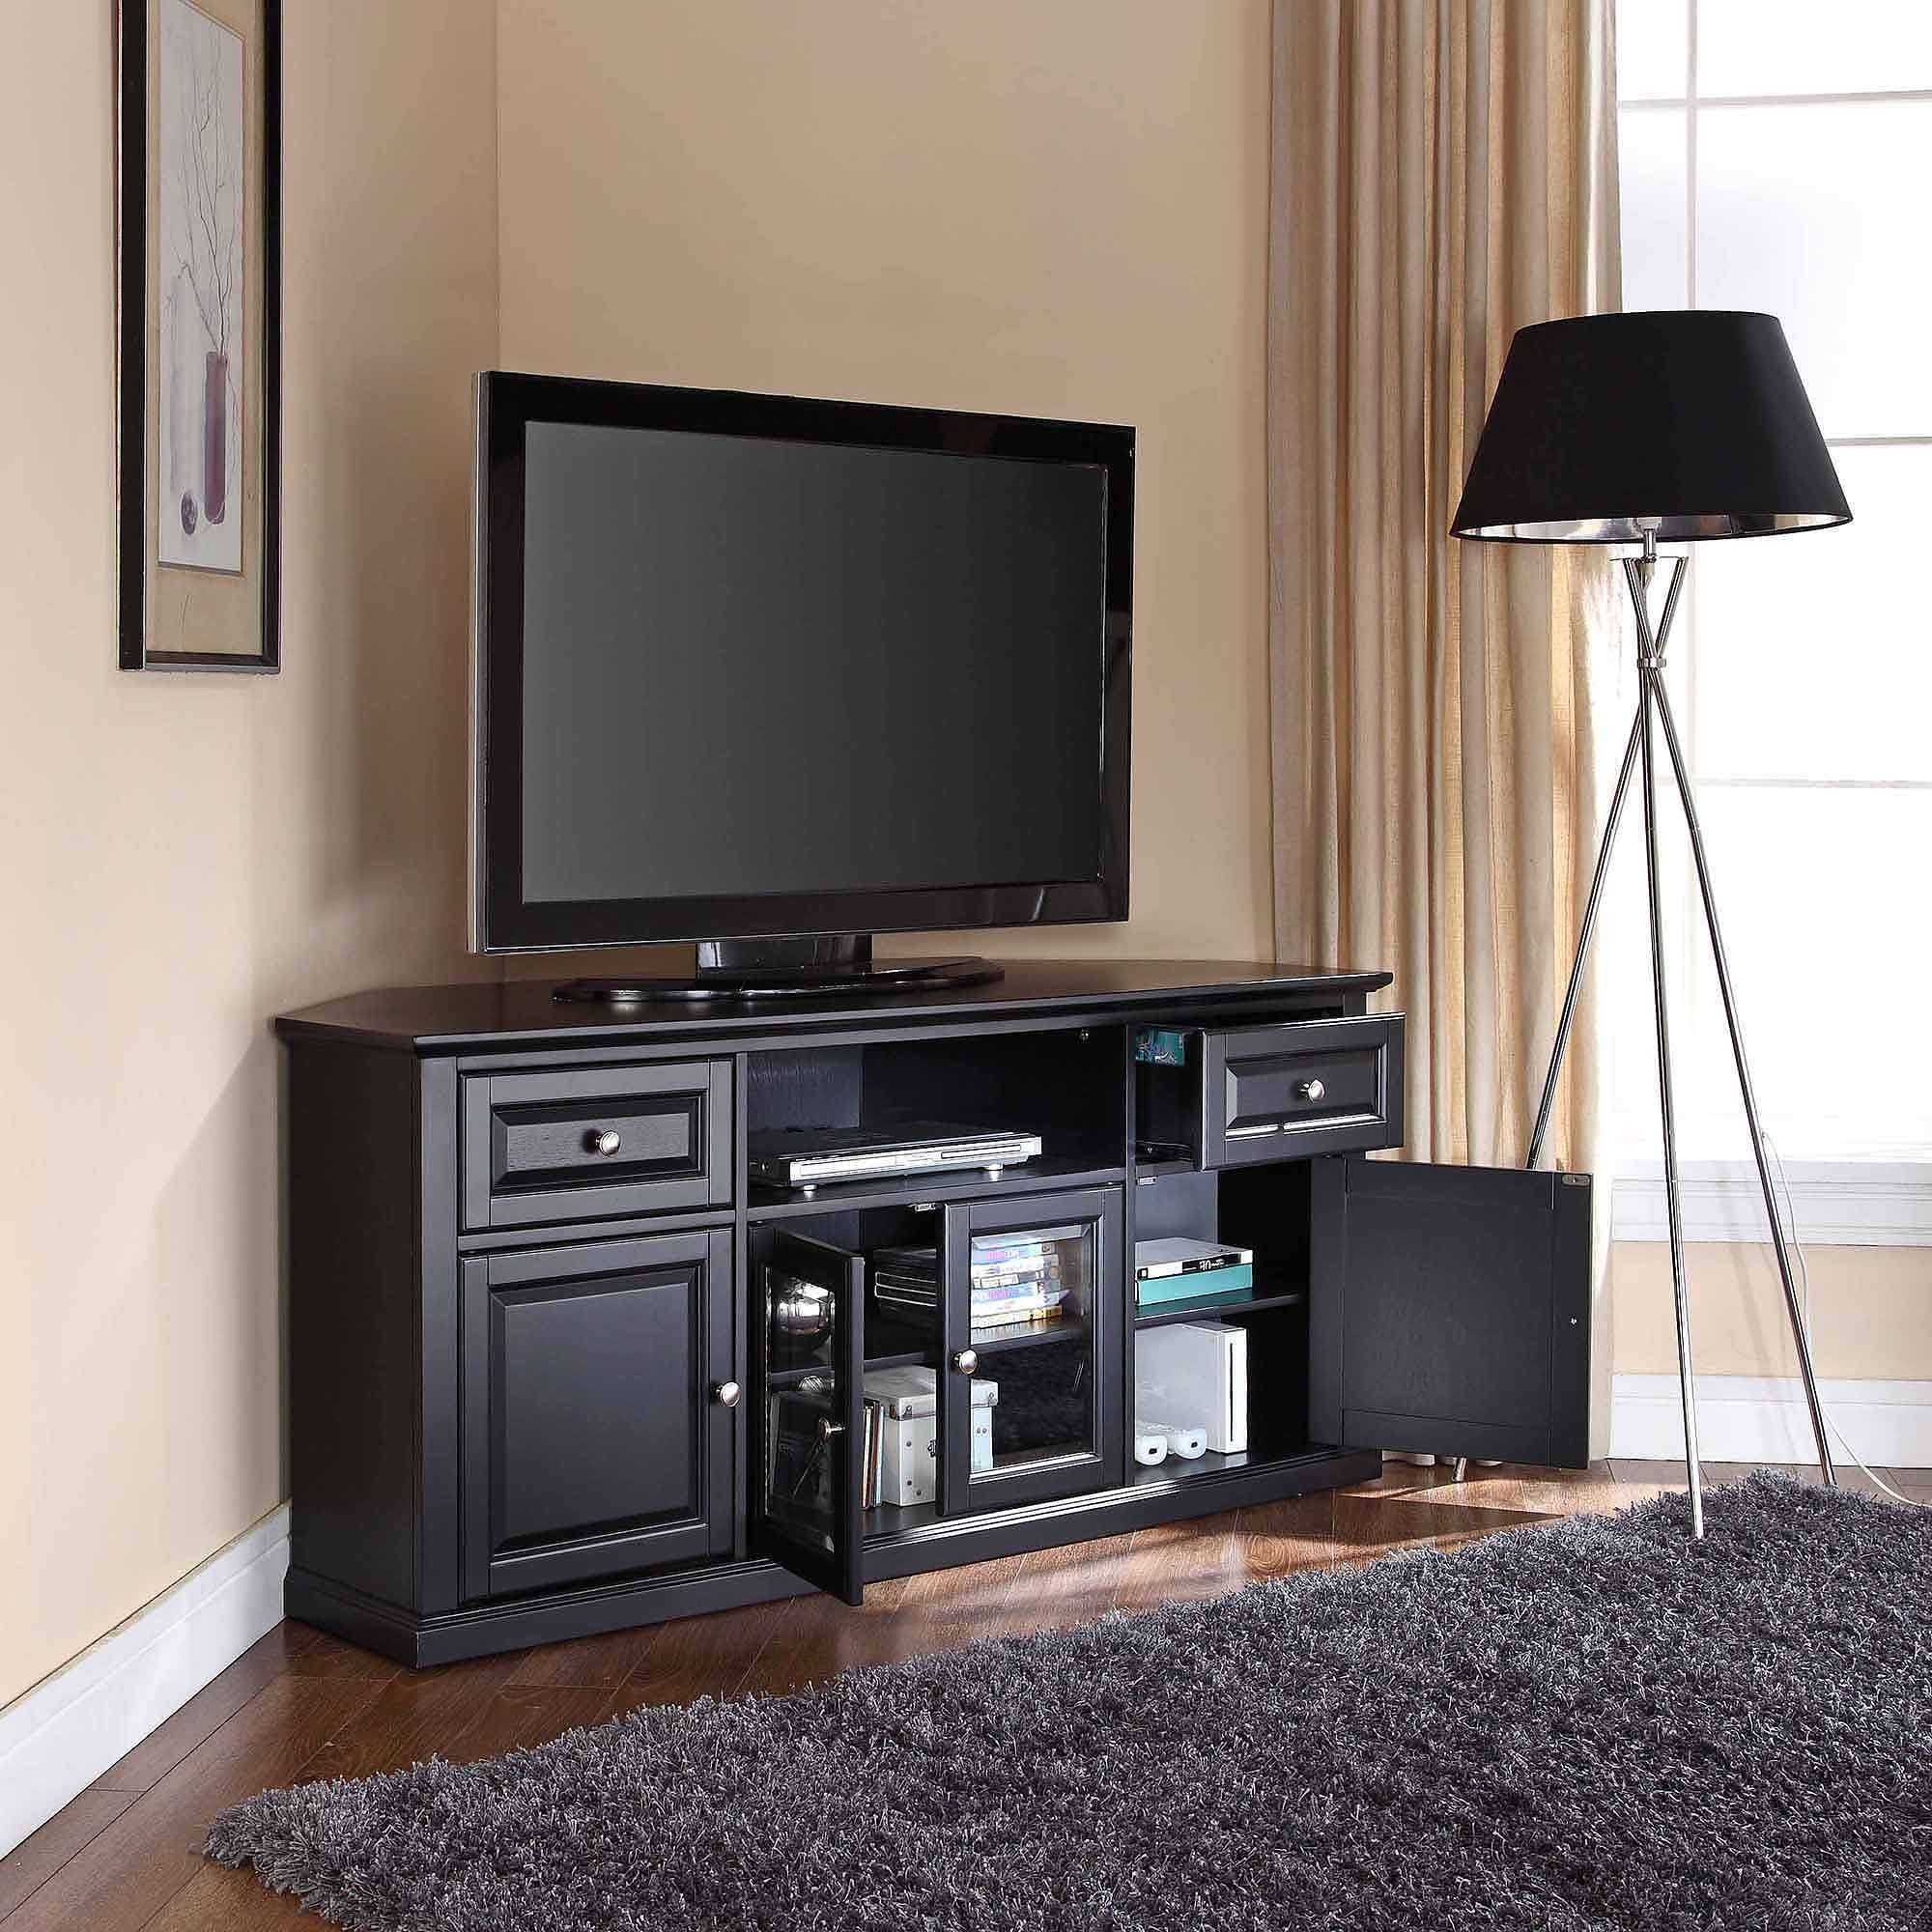 "Crosley Furniture Corner Tv Stand For Tvs Up To 60"" – Walmart Intended For Tv Stands For Corner (View 3 of 15)"